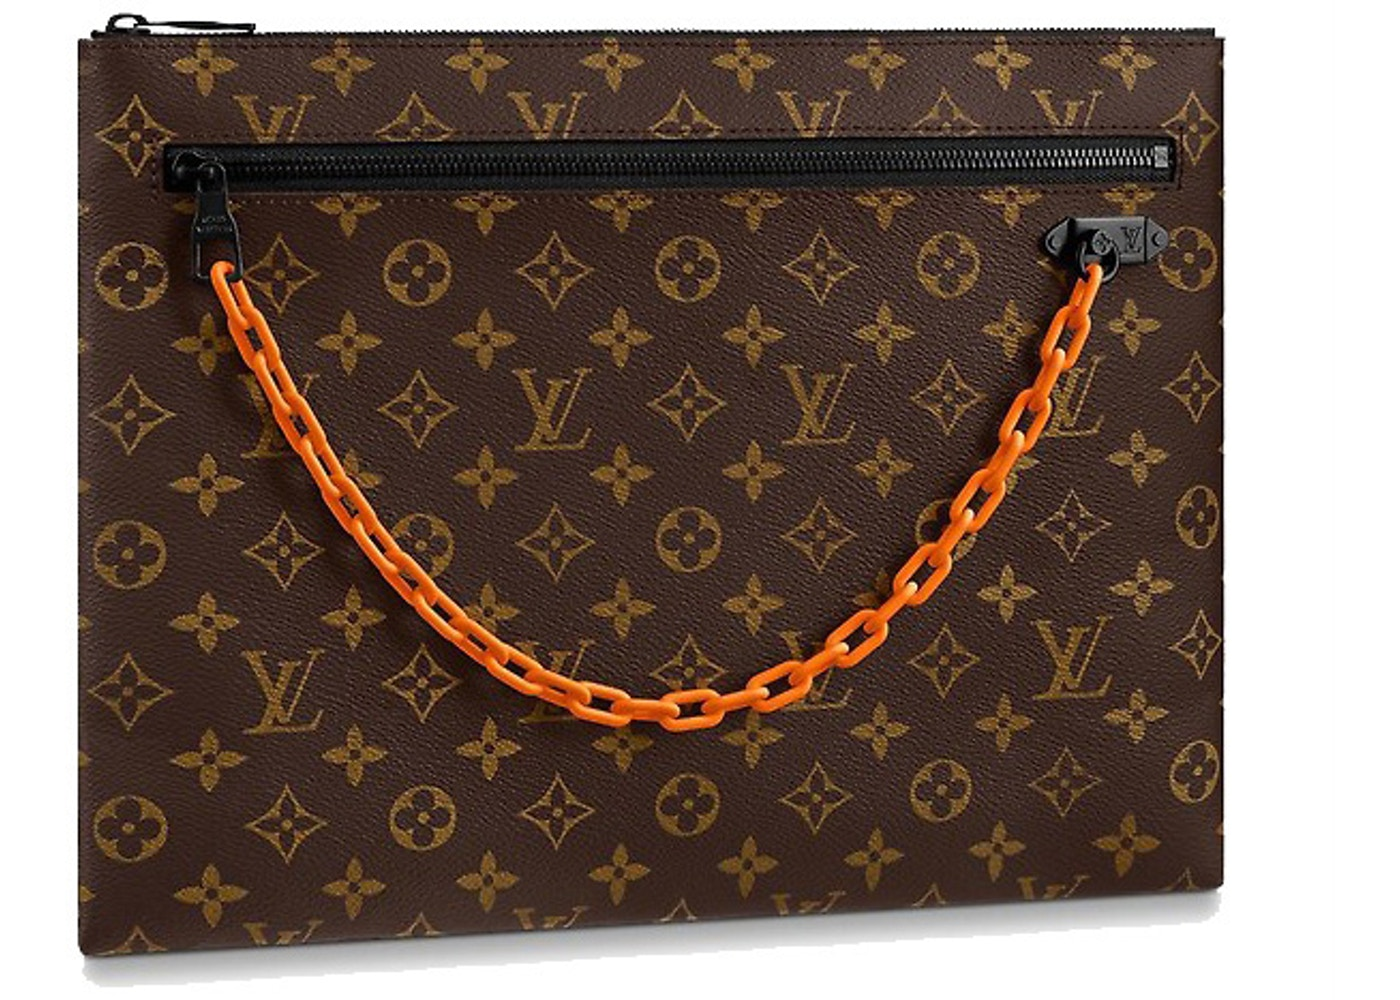 36e6fd1dcb1 Louis Vuitton A4 Pouch Monogram Brown